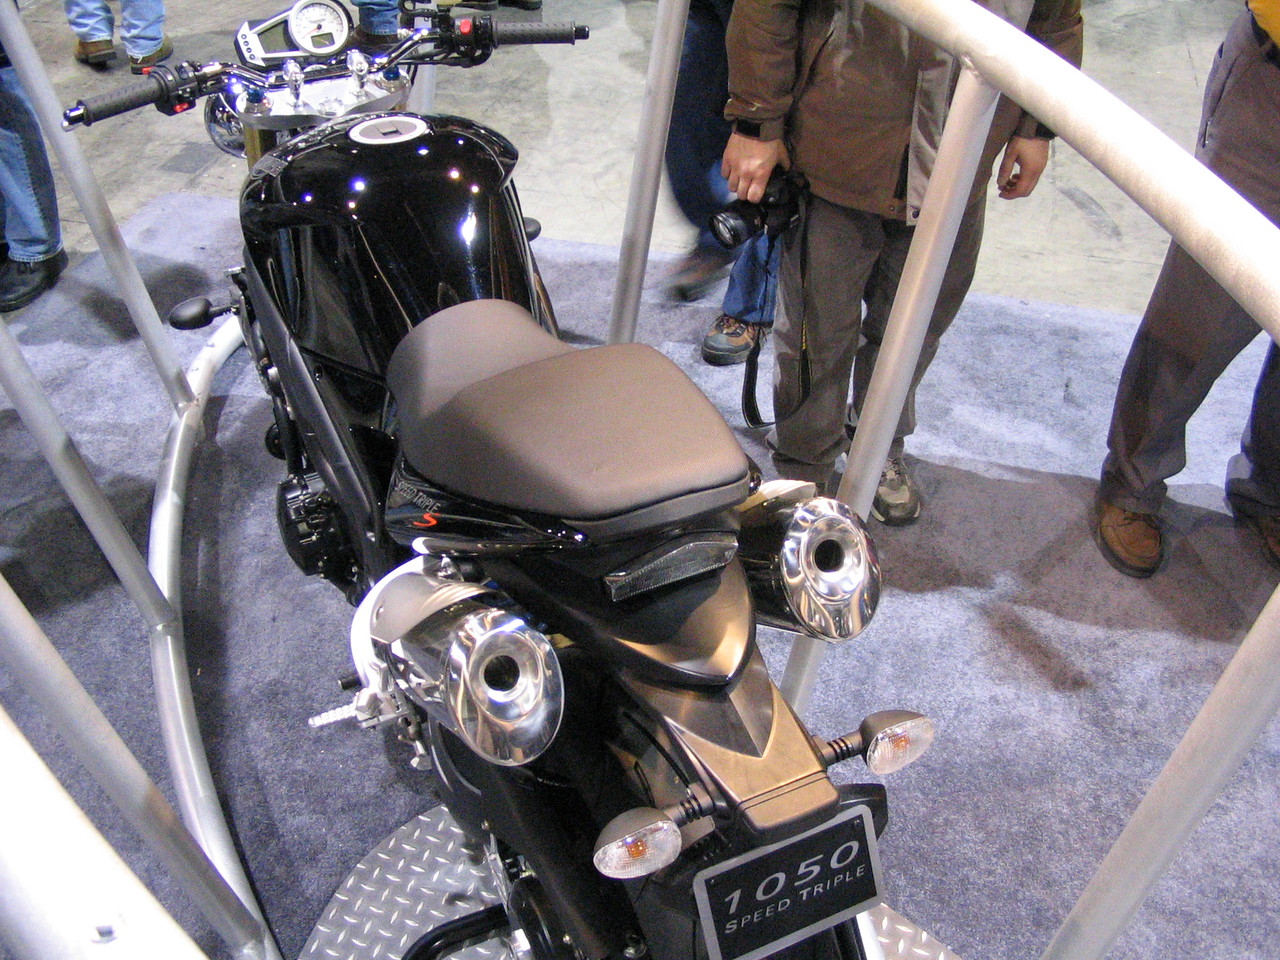 Narrower tank / seat = smaller feeling bike?